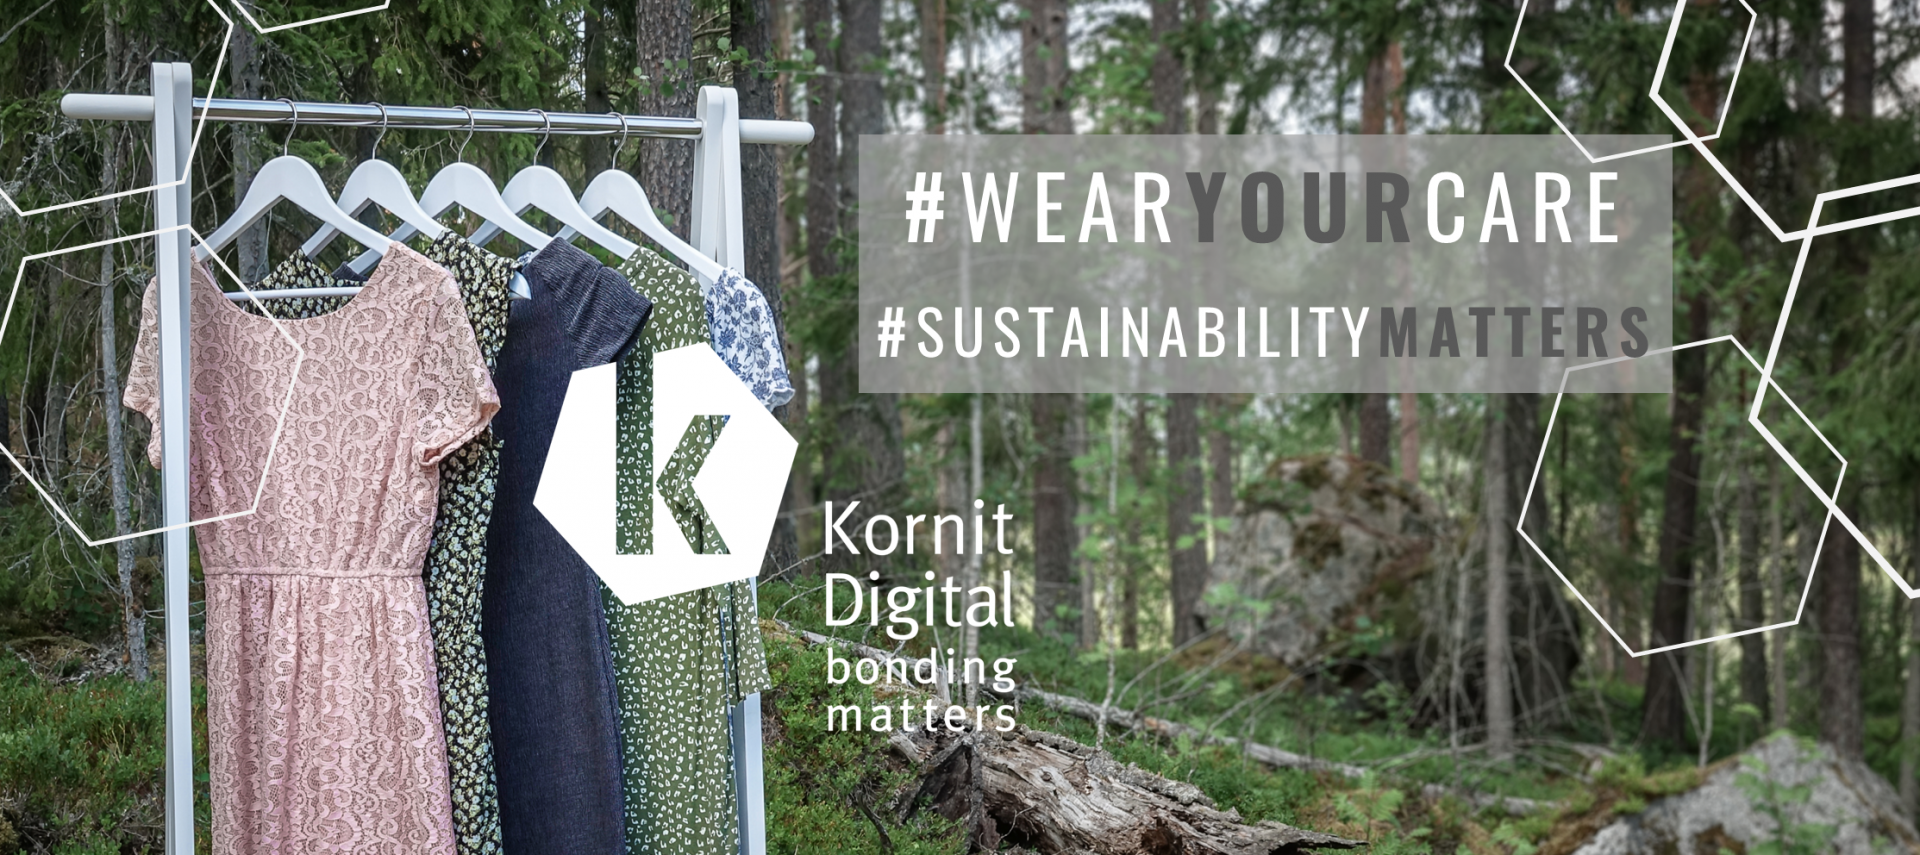 Kornit Digital Commits to Saving 4.3 Trillion Liters of Water and 17.2 Billion Kilograms of Greenhouse Gas Emissions